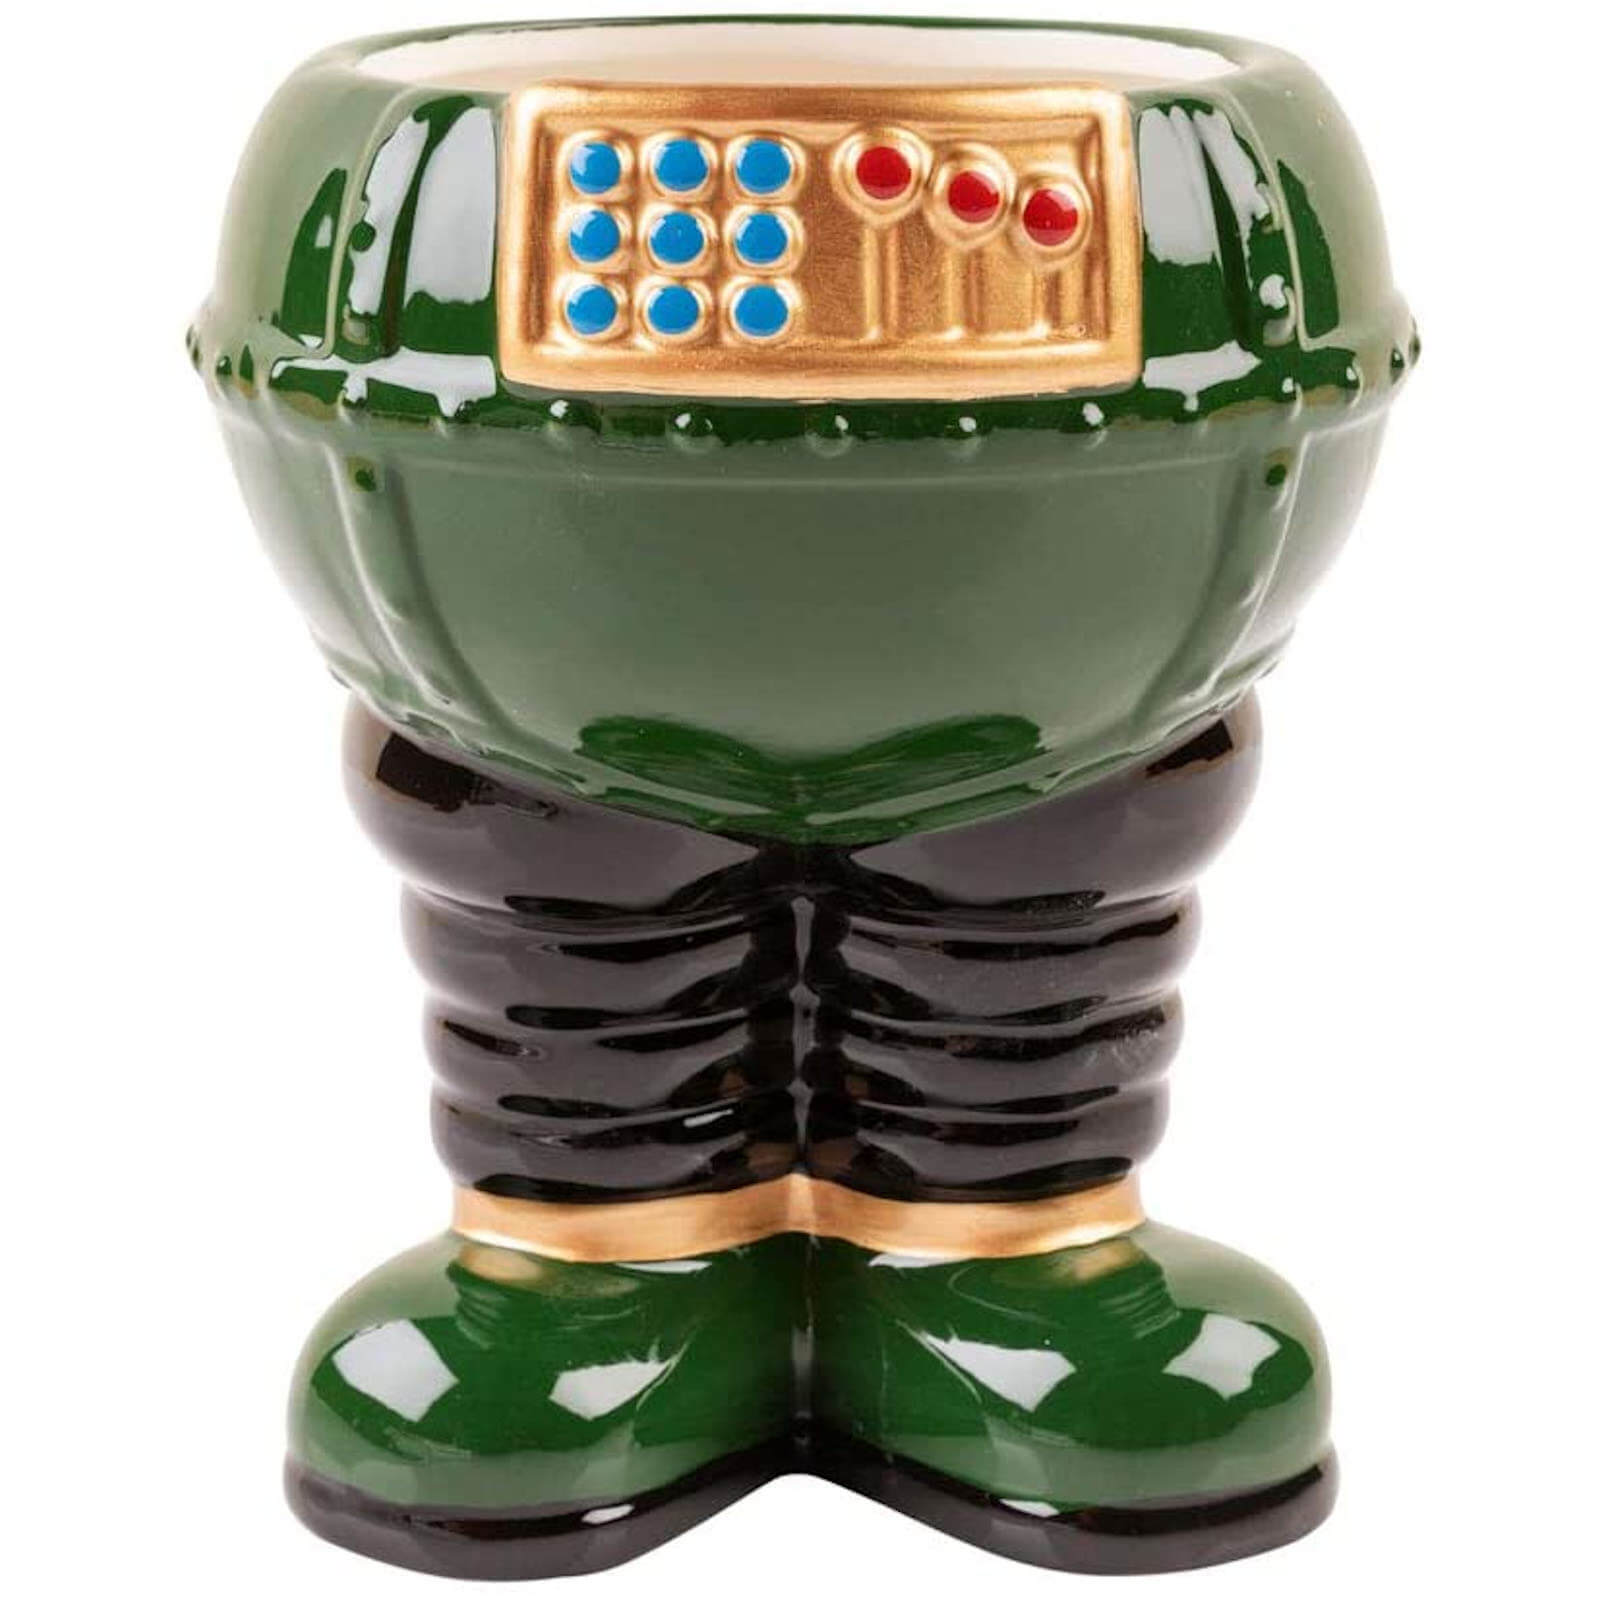 Image of Wallace & Gromit Desk Tidy